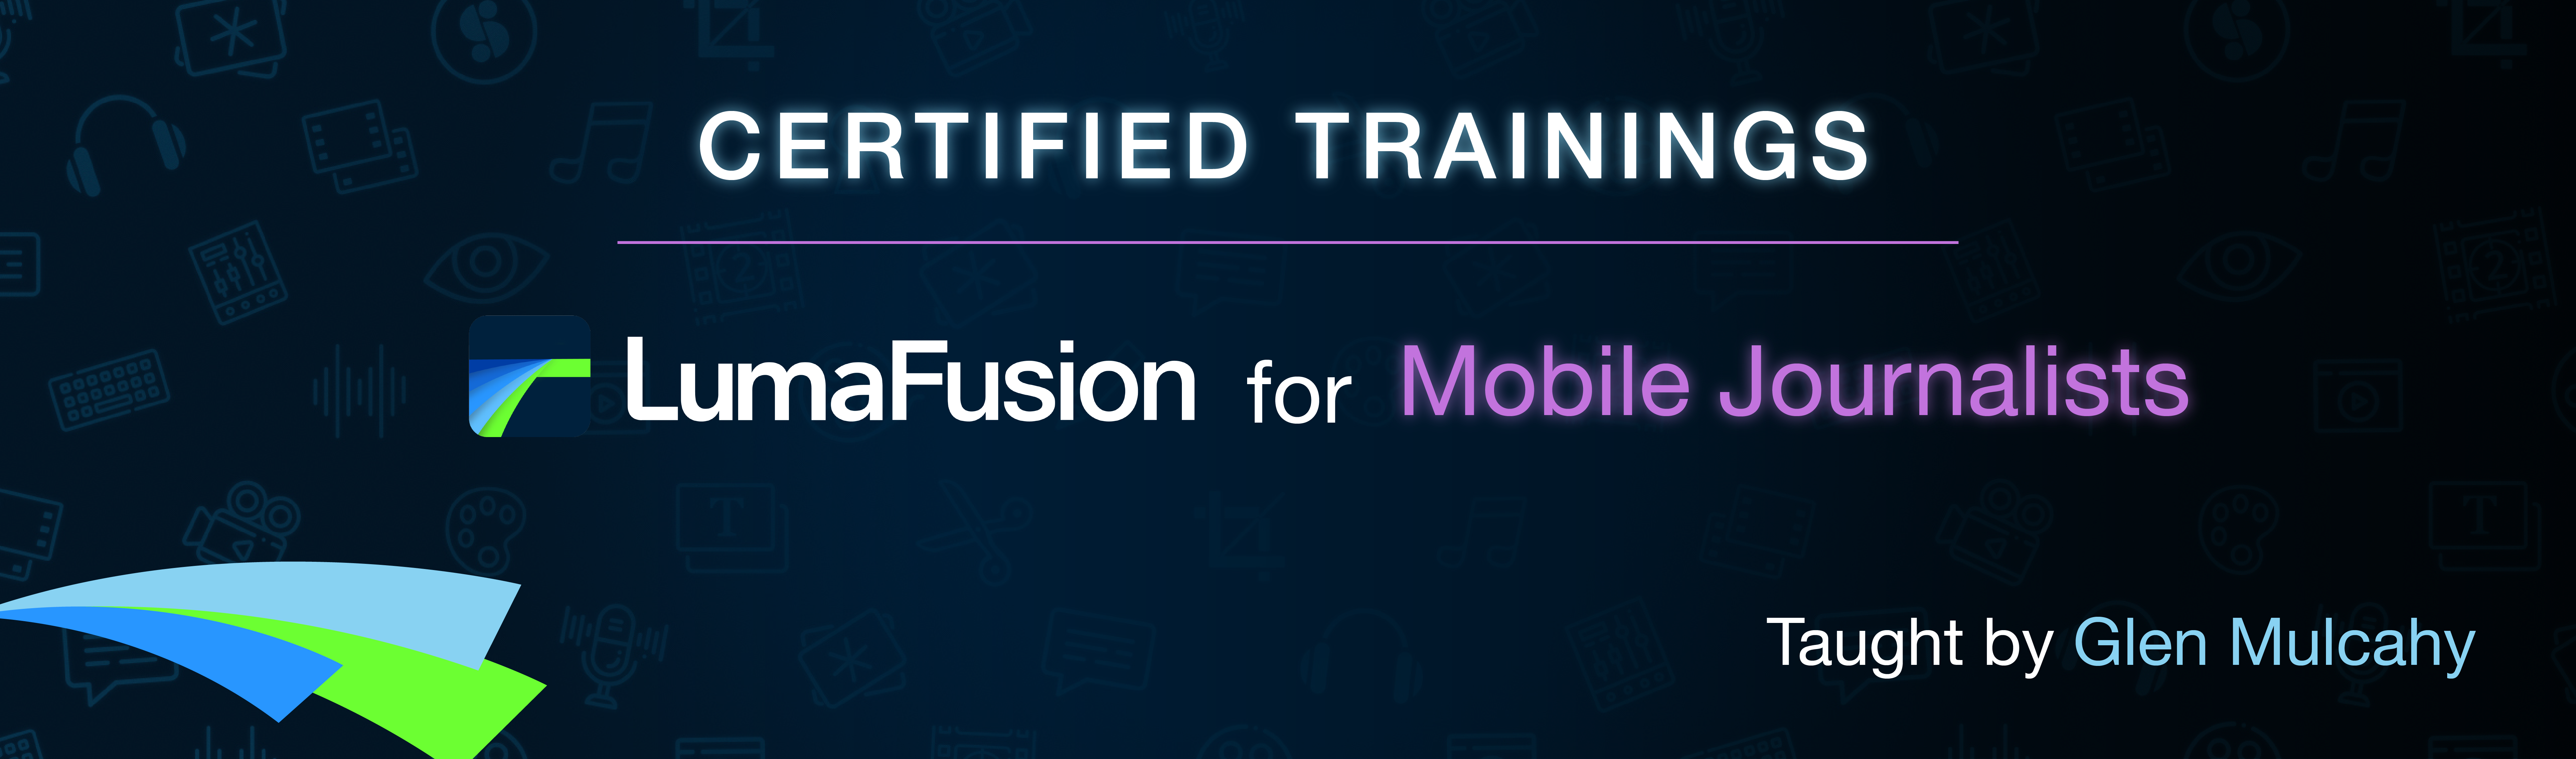 LumaFusion for Mobile Journalists